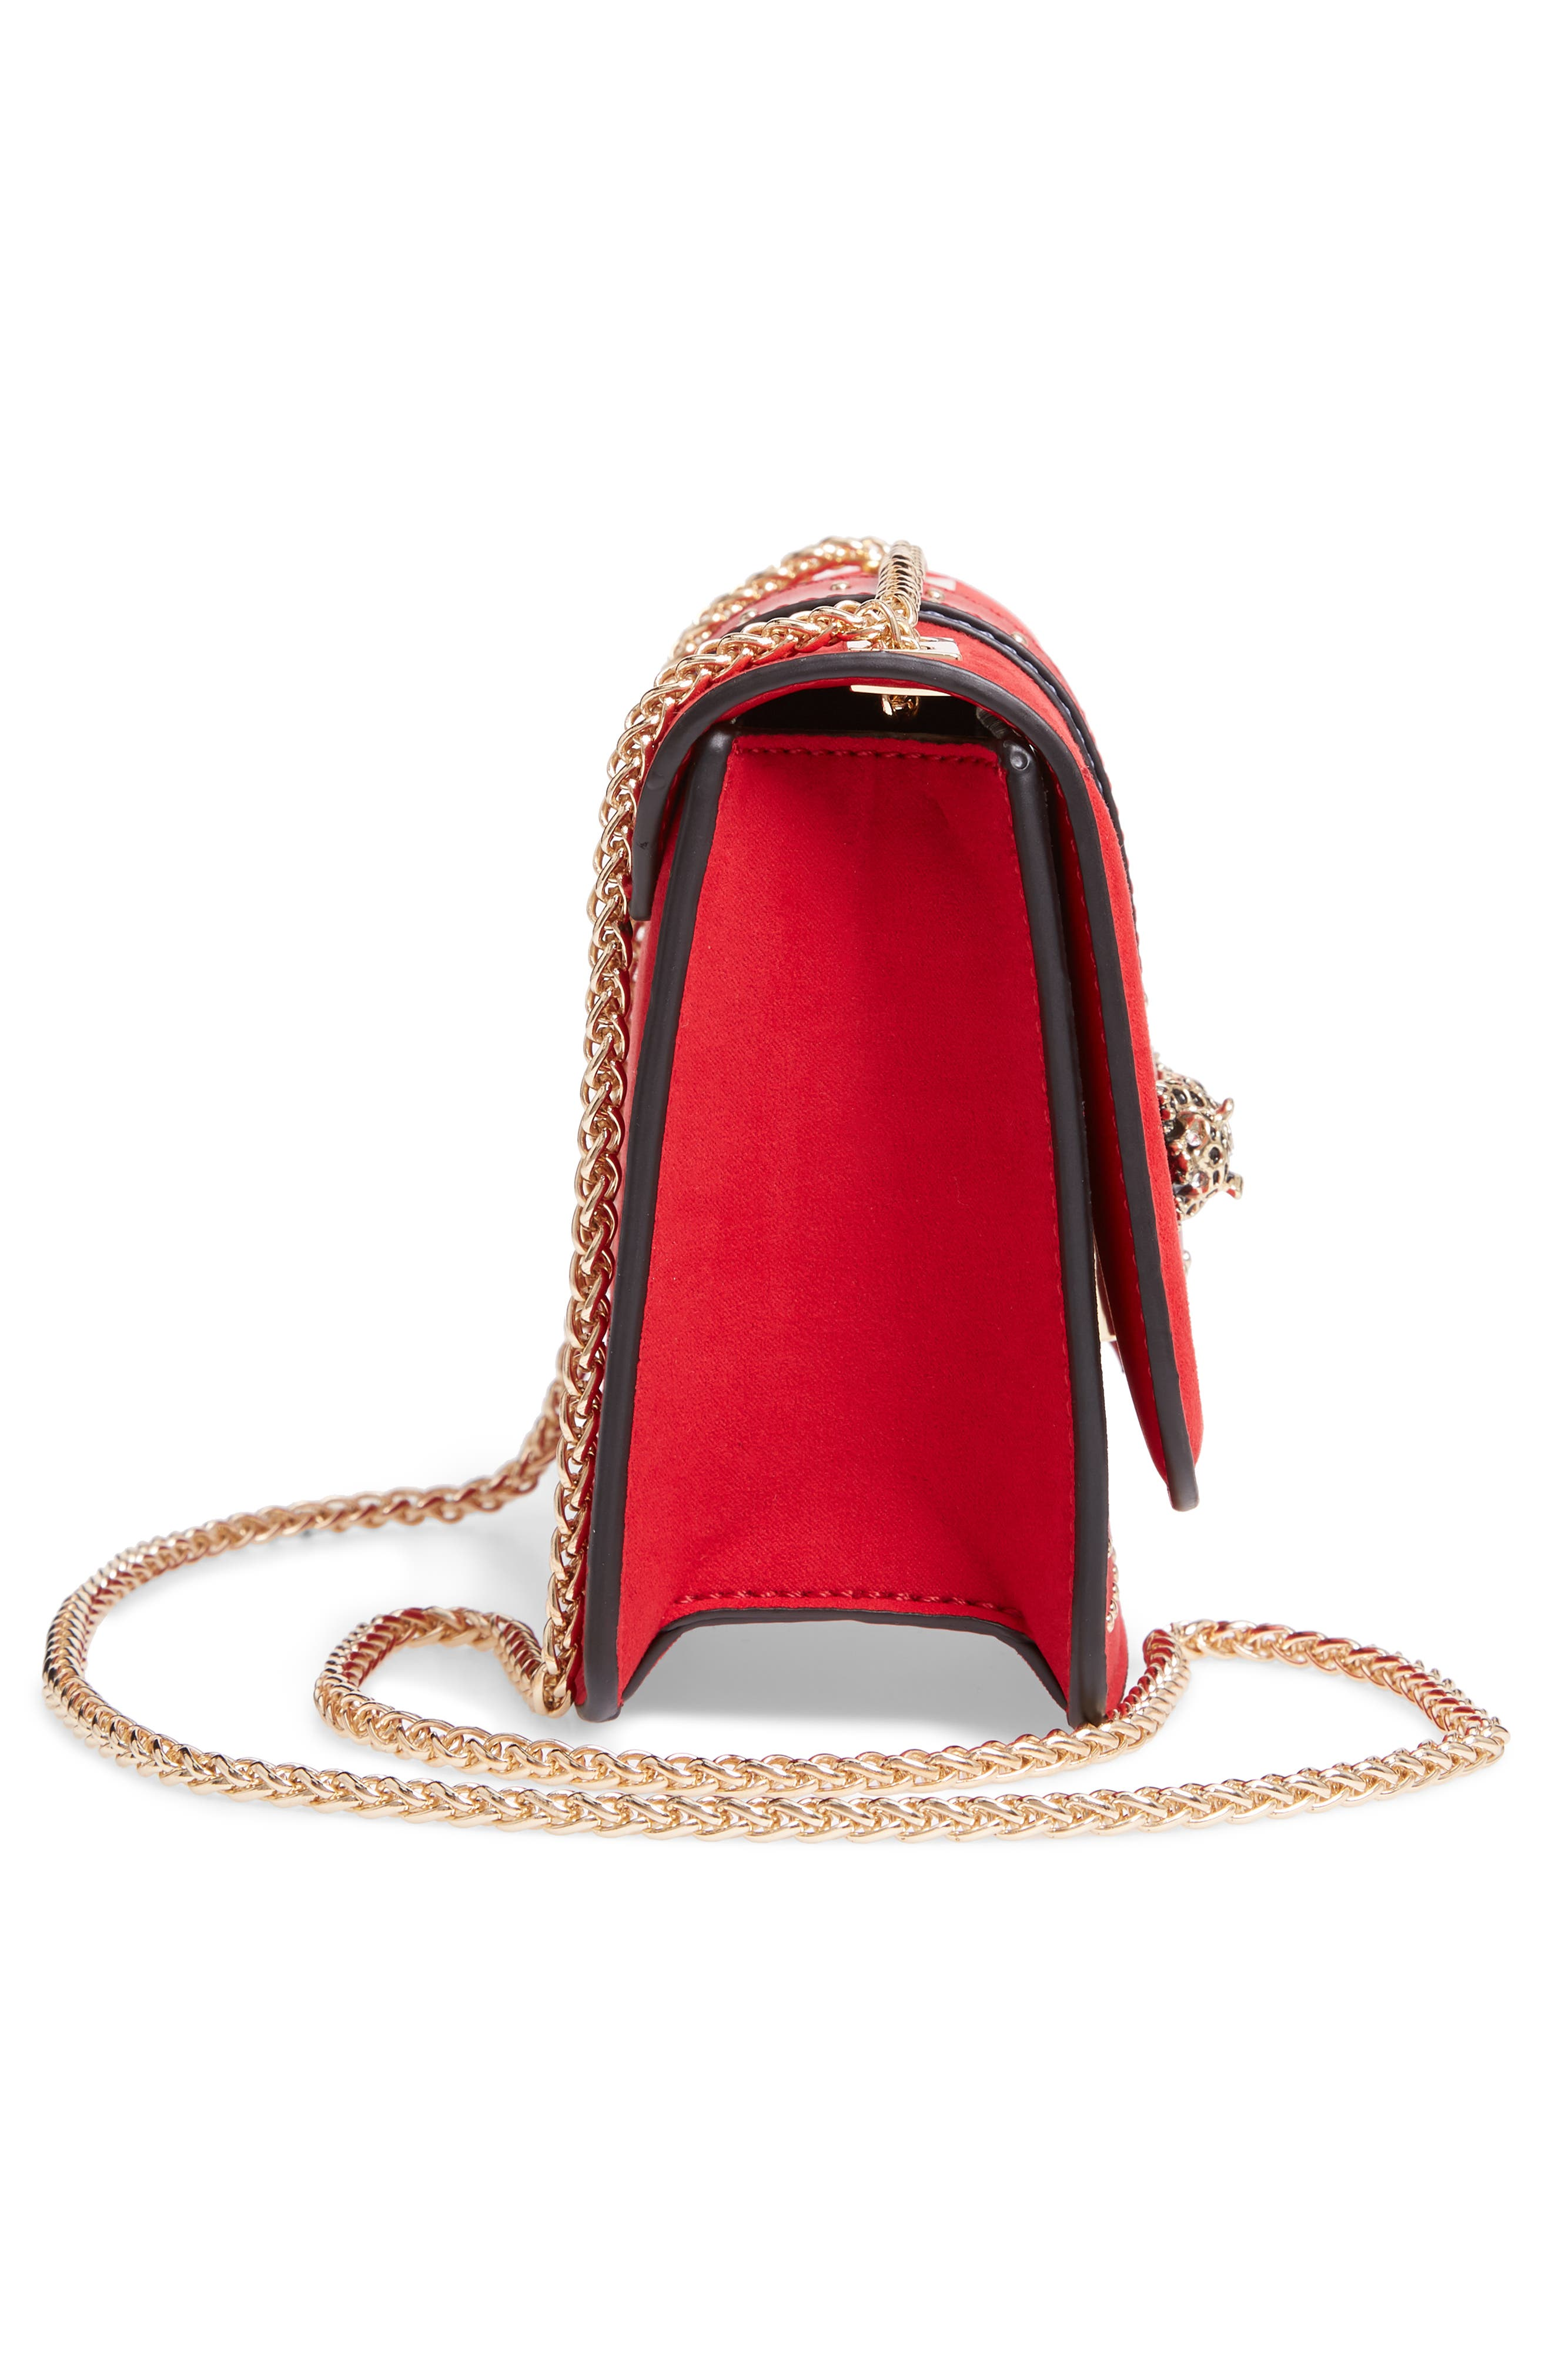 Panther Crossbody Bag,                             Alternate thumbnail 5, color,                             RED